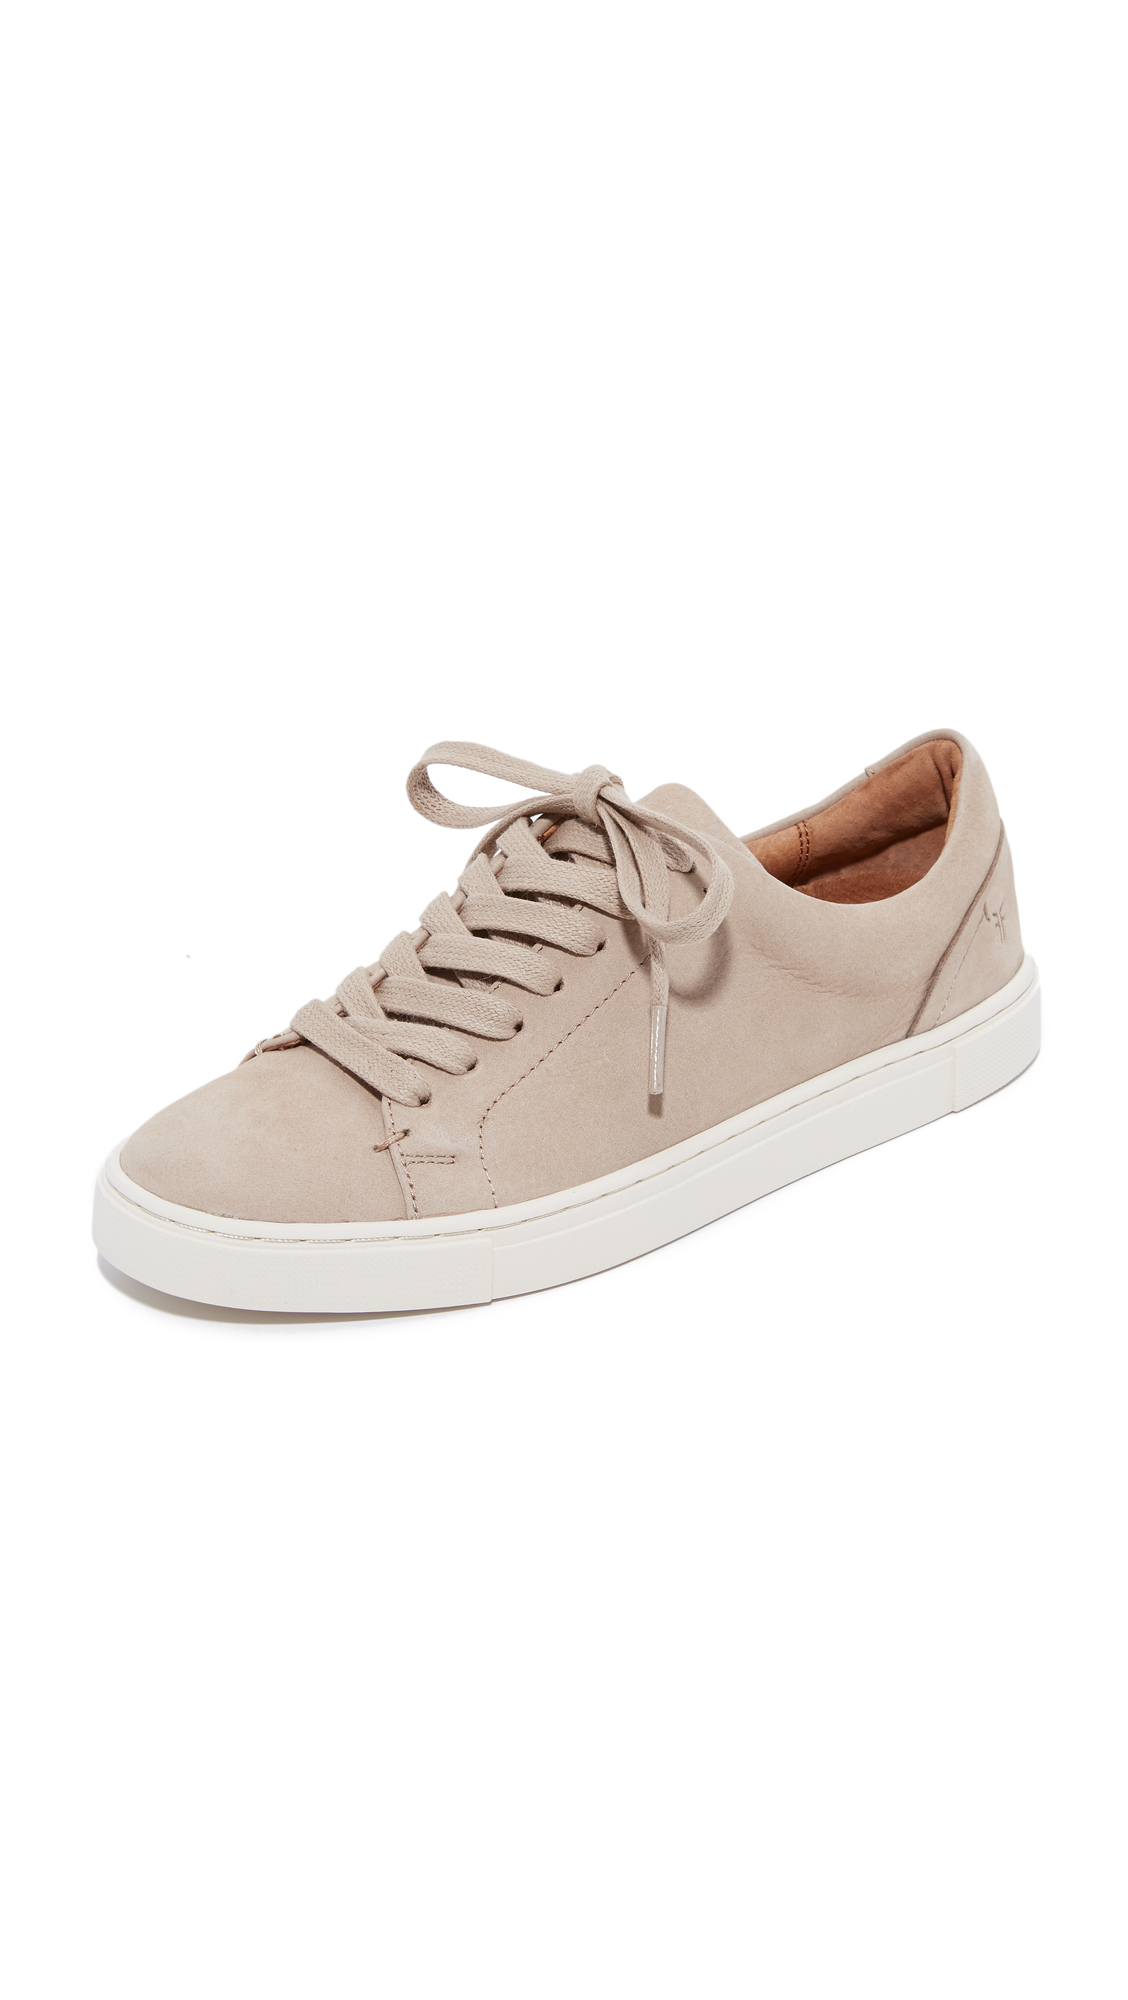 Frye Ivy Low Lace Sneakers - Taupe